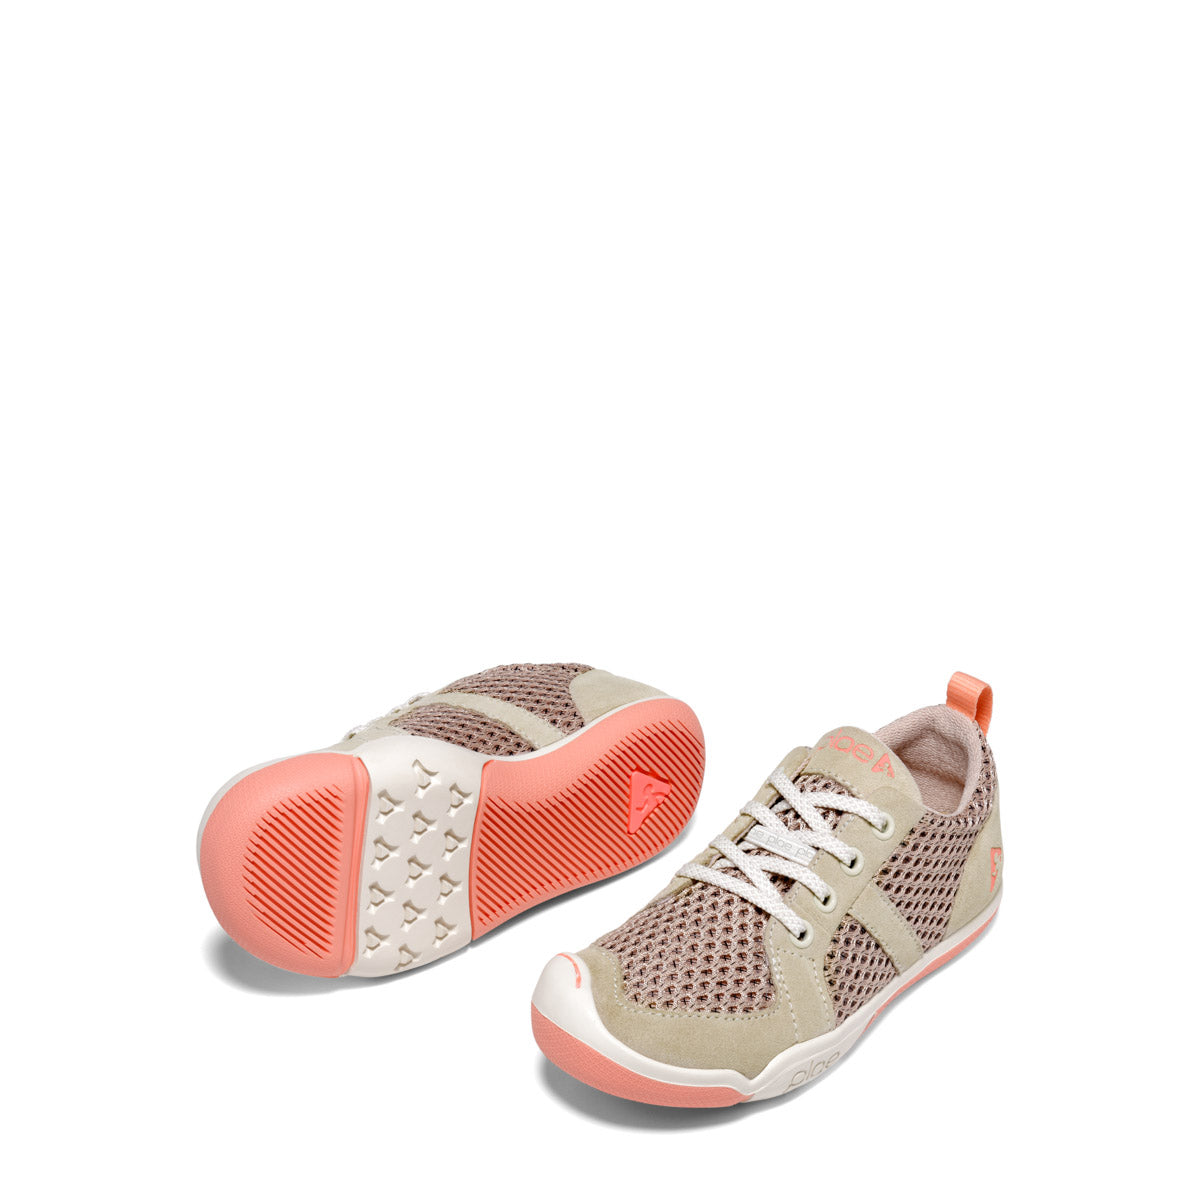 Miles Lace Sneaker - Blush Tan